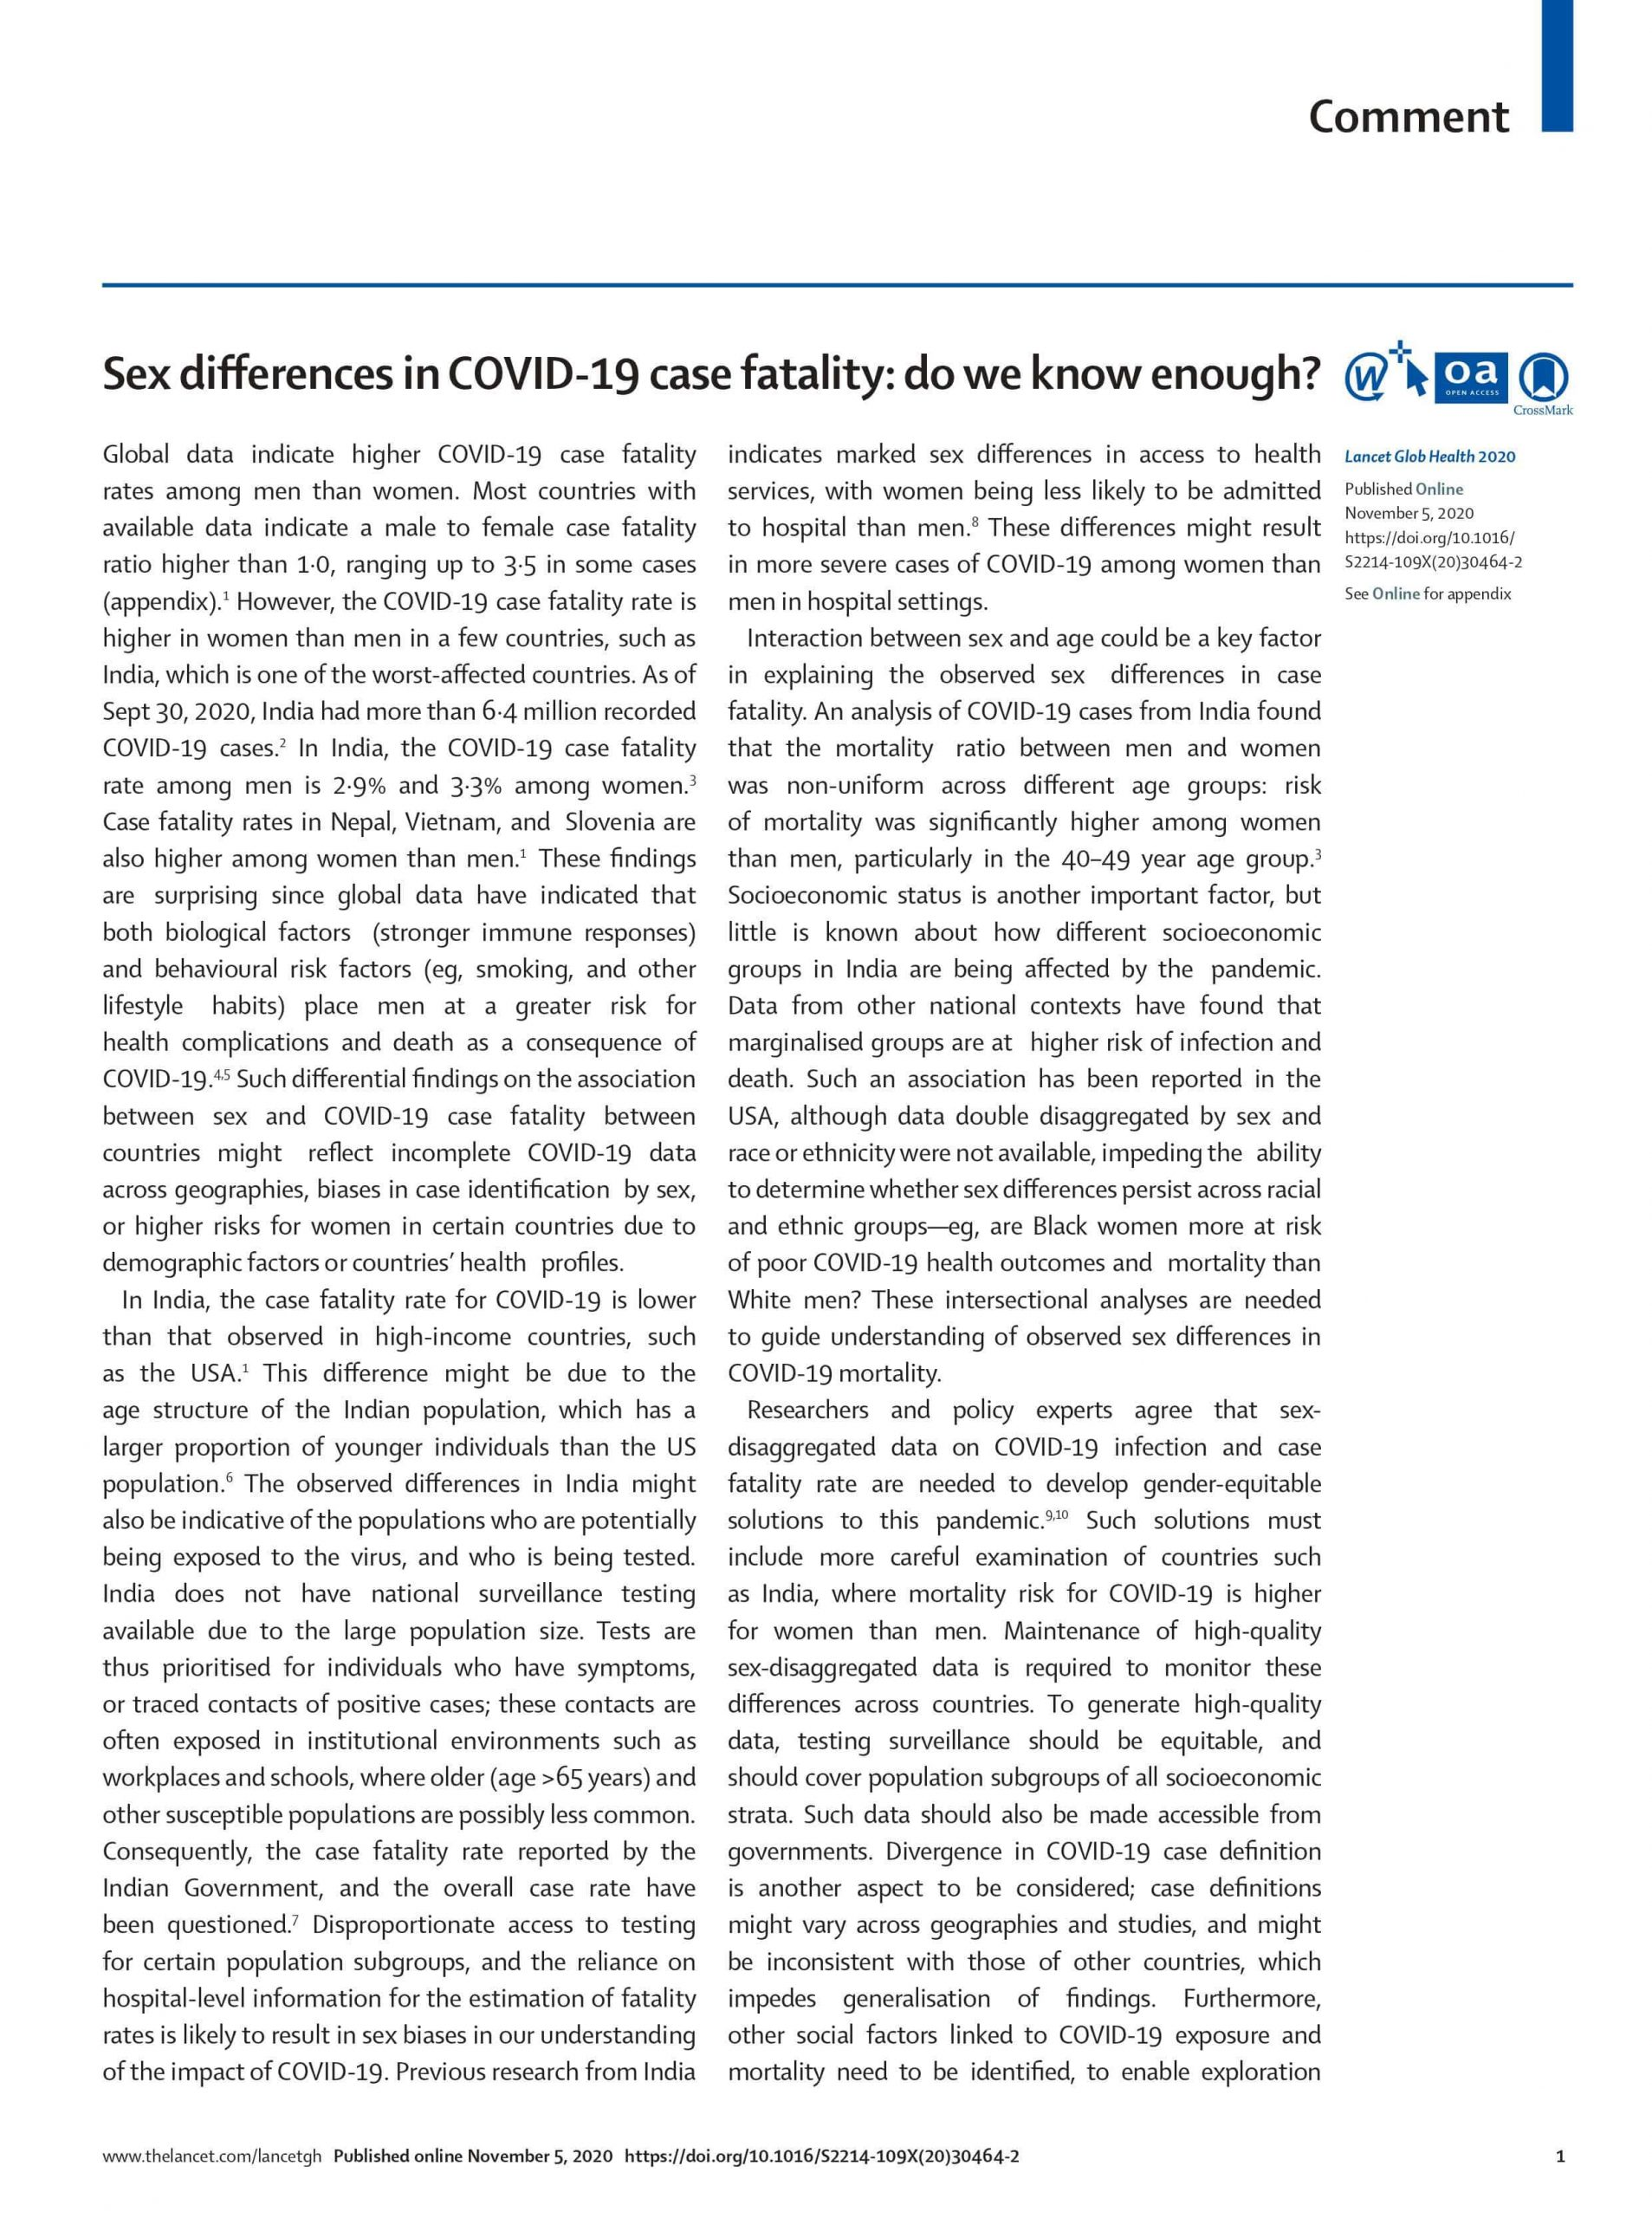 Sex differences in COVID-19 case fatality